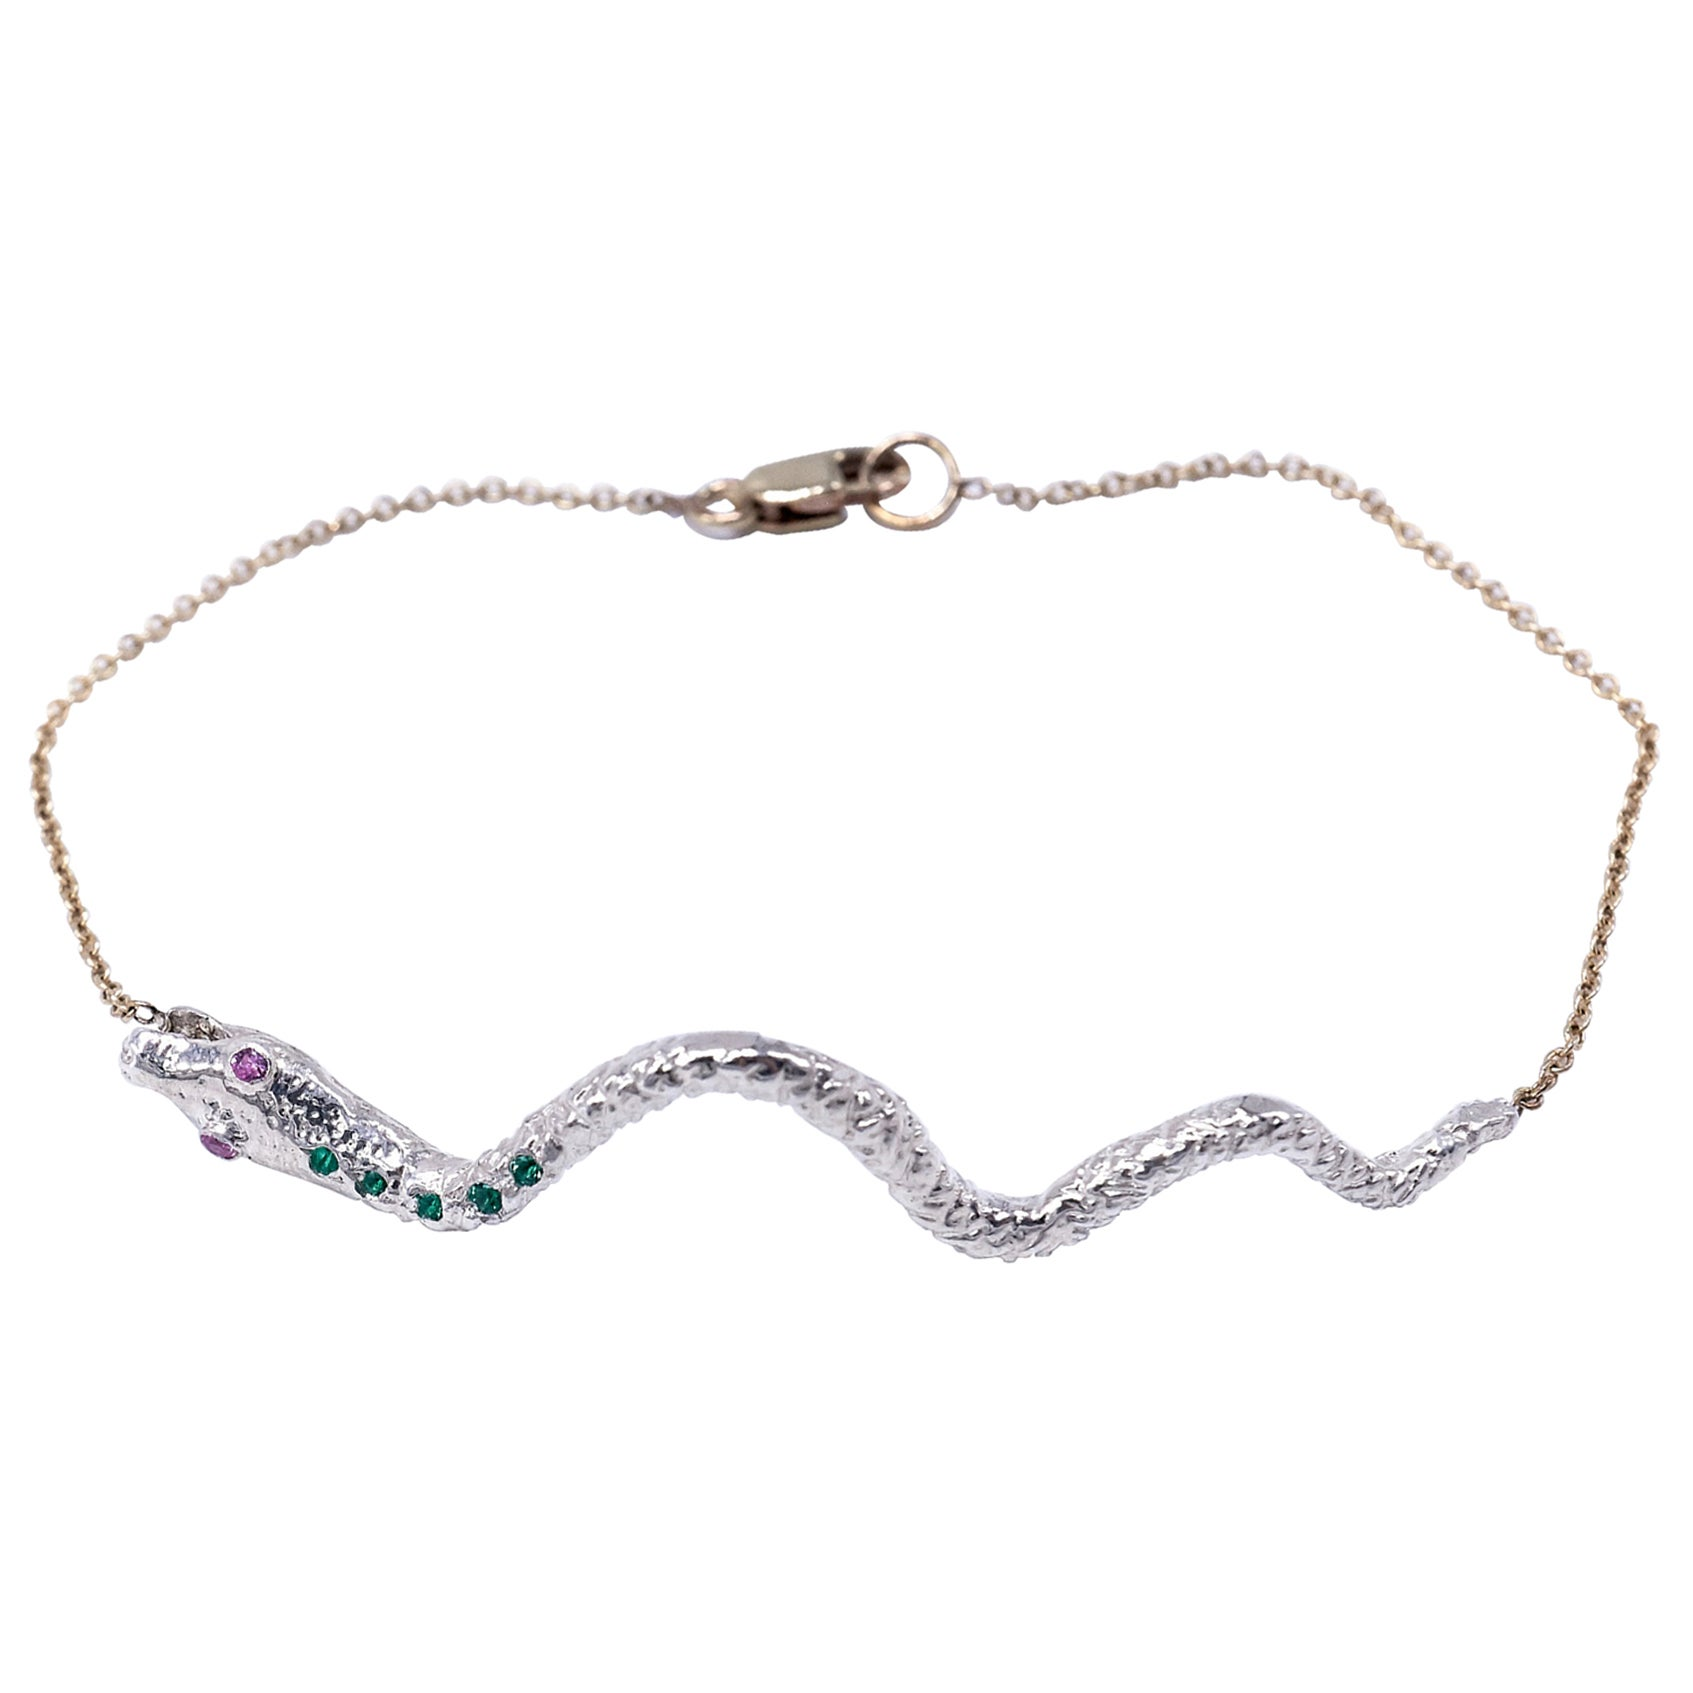 Emerald Pink Sapphire Snake Bracelet Sterling Silver Gold Tone Chain J Dauphin